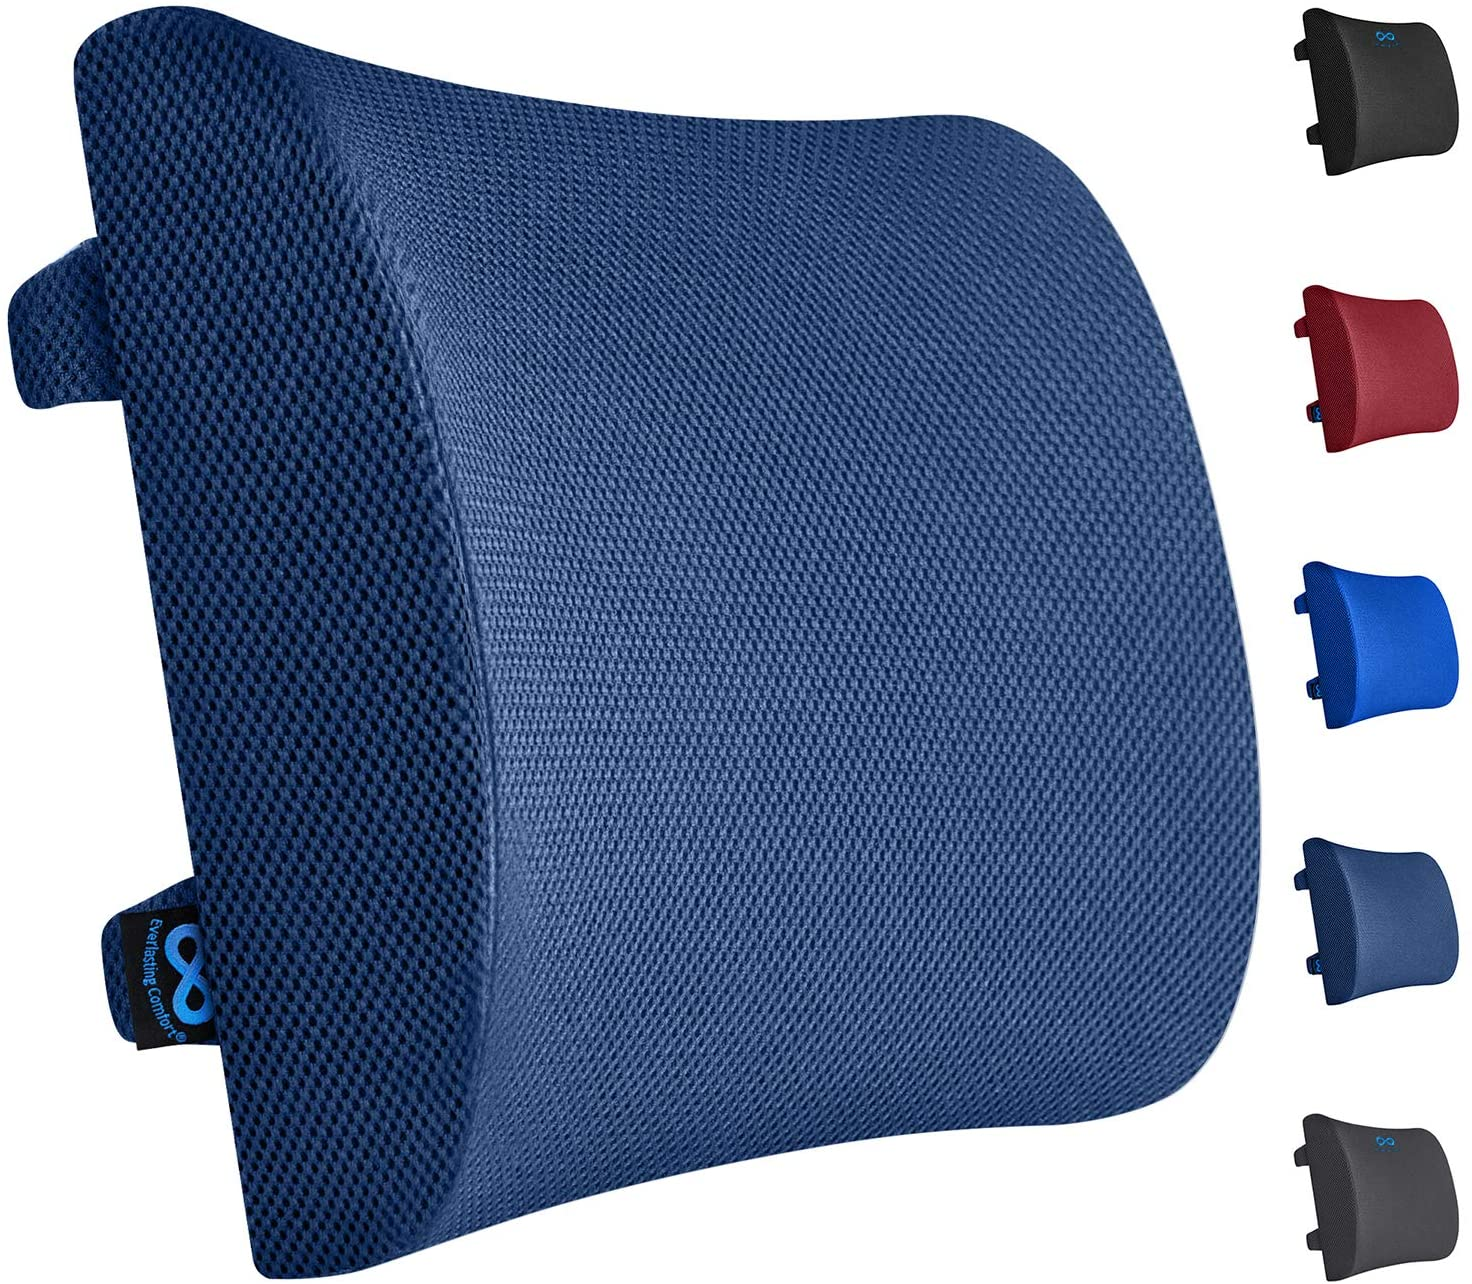 Everlasting Comfort Lumbar Support Pillow for Office Chair - Pure Memory Foam Lumbar Cushion for Car (Navy Blue)